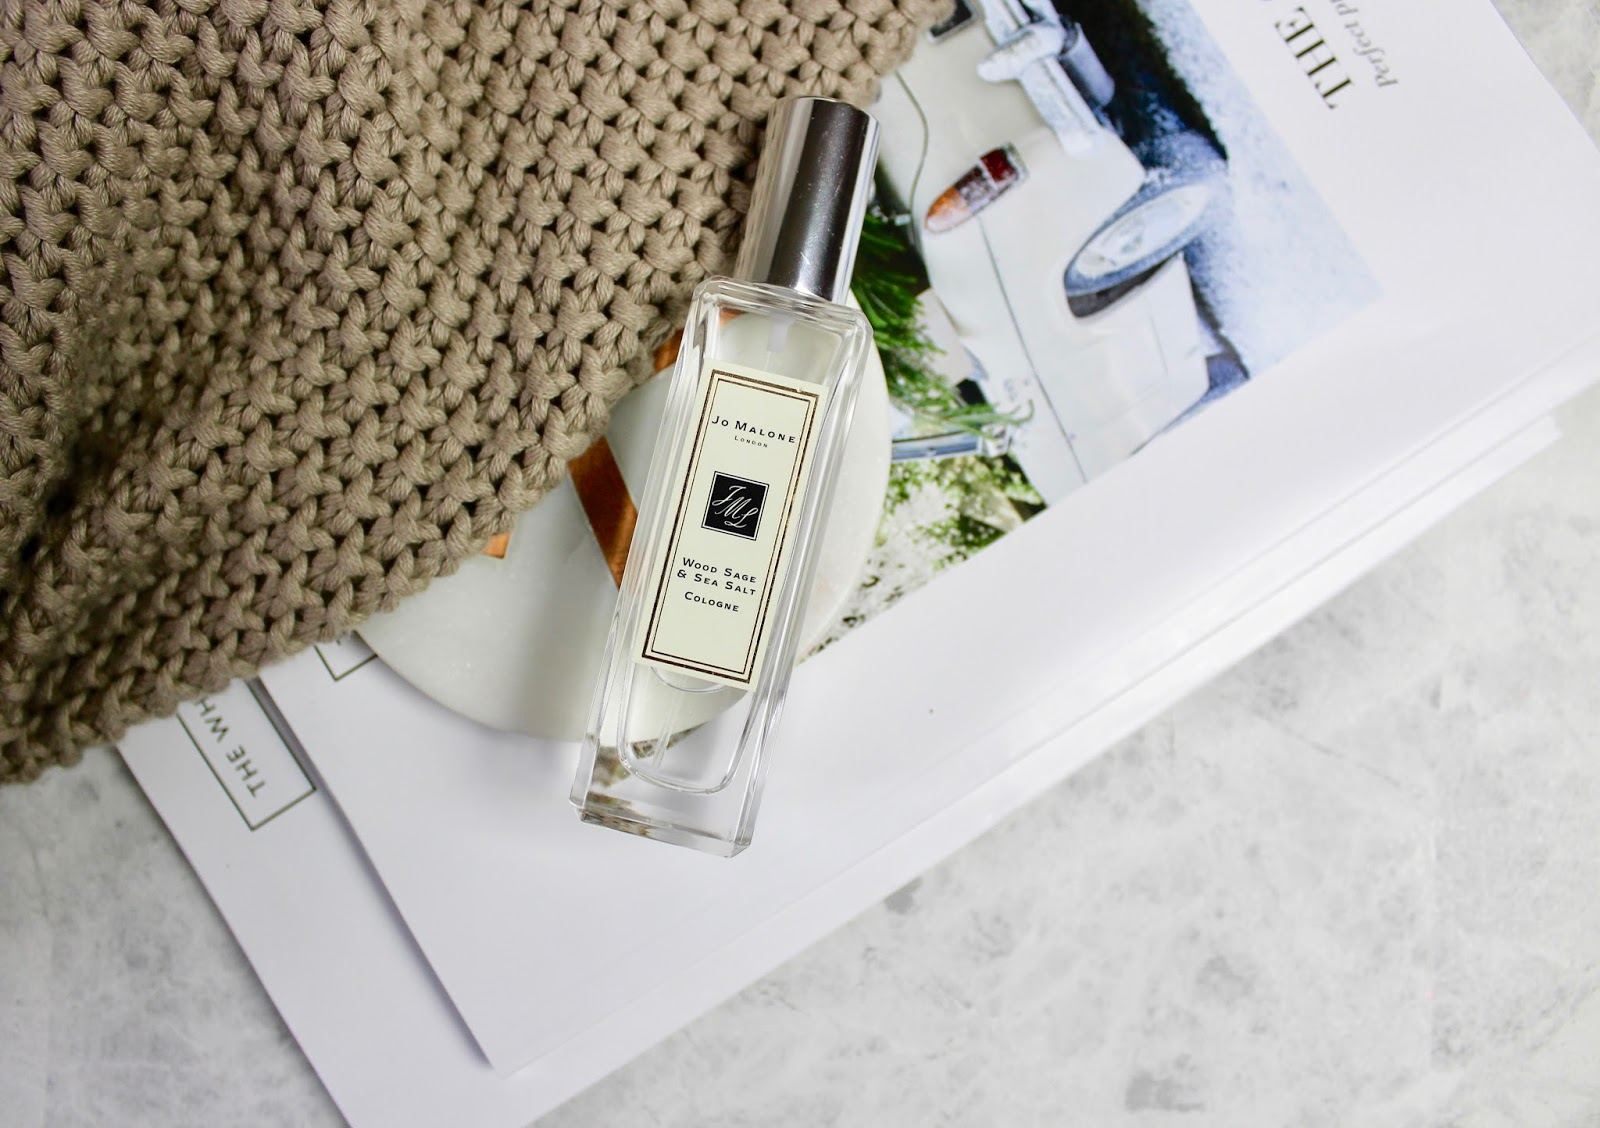 Jo Malone - Wood Sage & Sea Salt Cologne